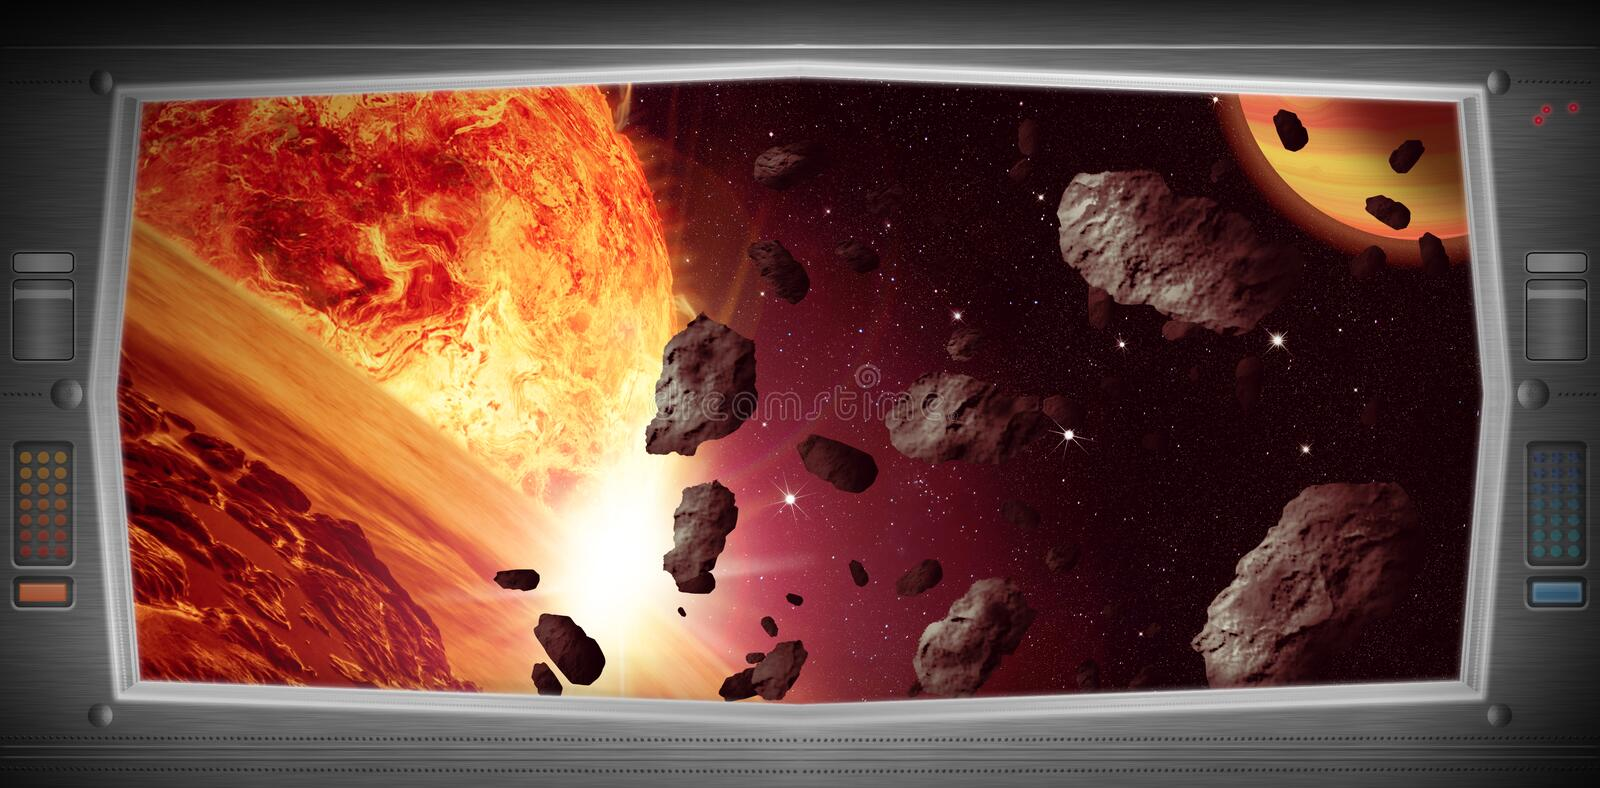 Space scene with asteroids from window view royalty free illustration